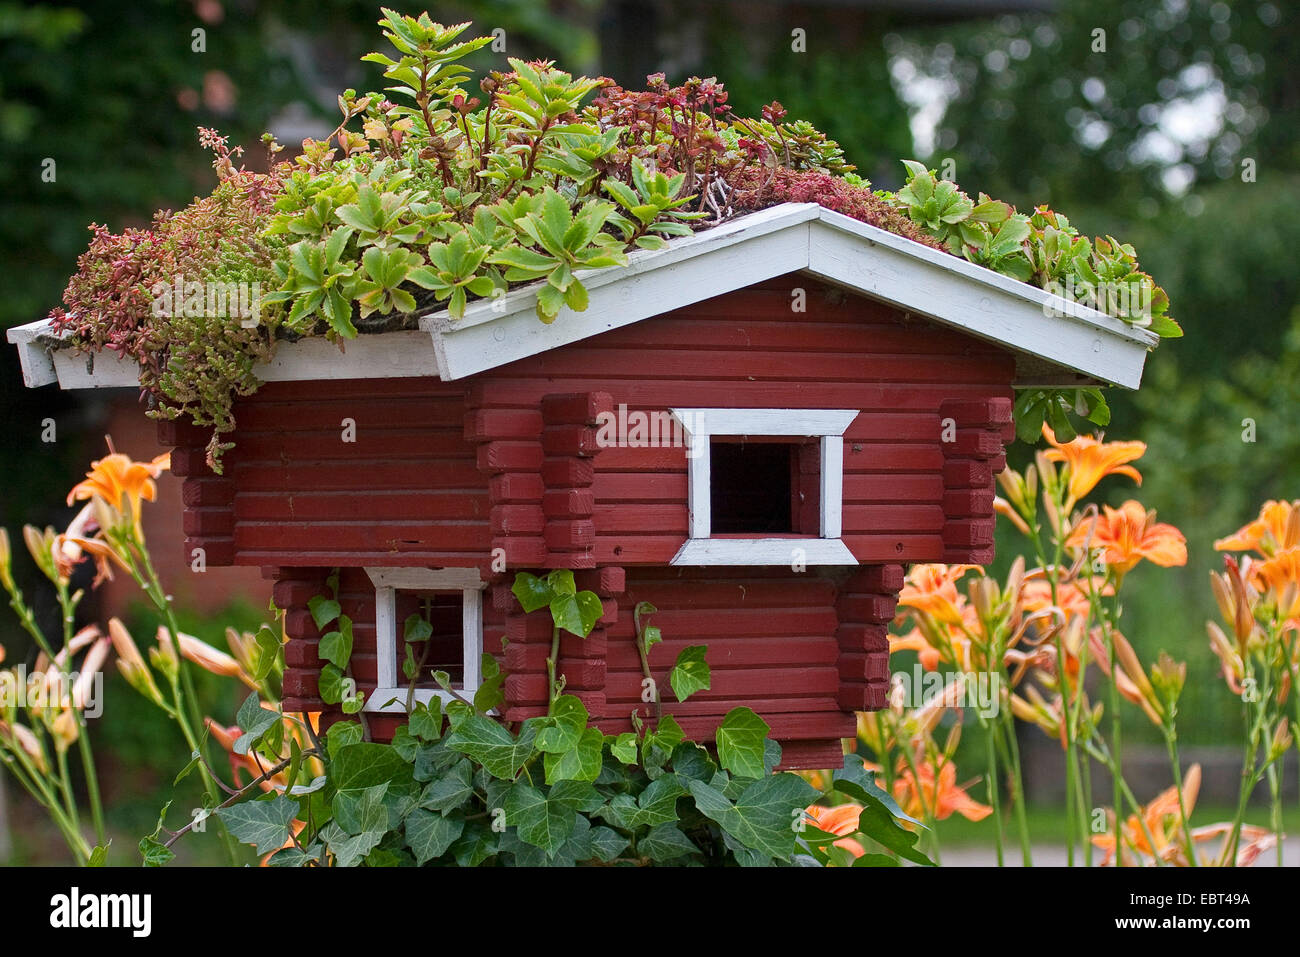 decorative birdhouse with the roof planted with succulents, Germany - Stock Image